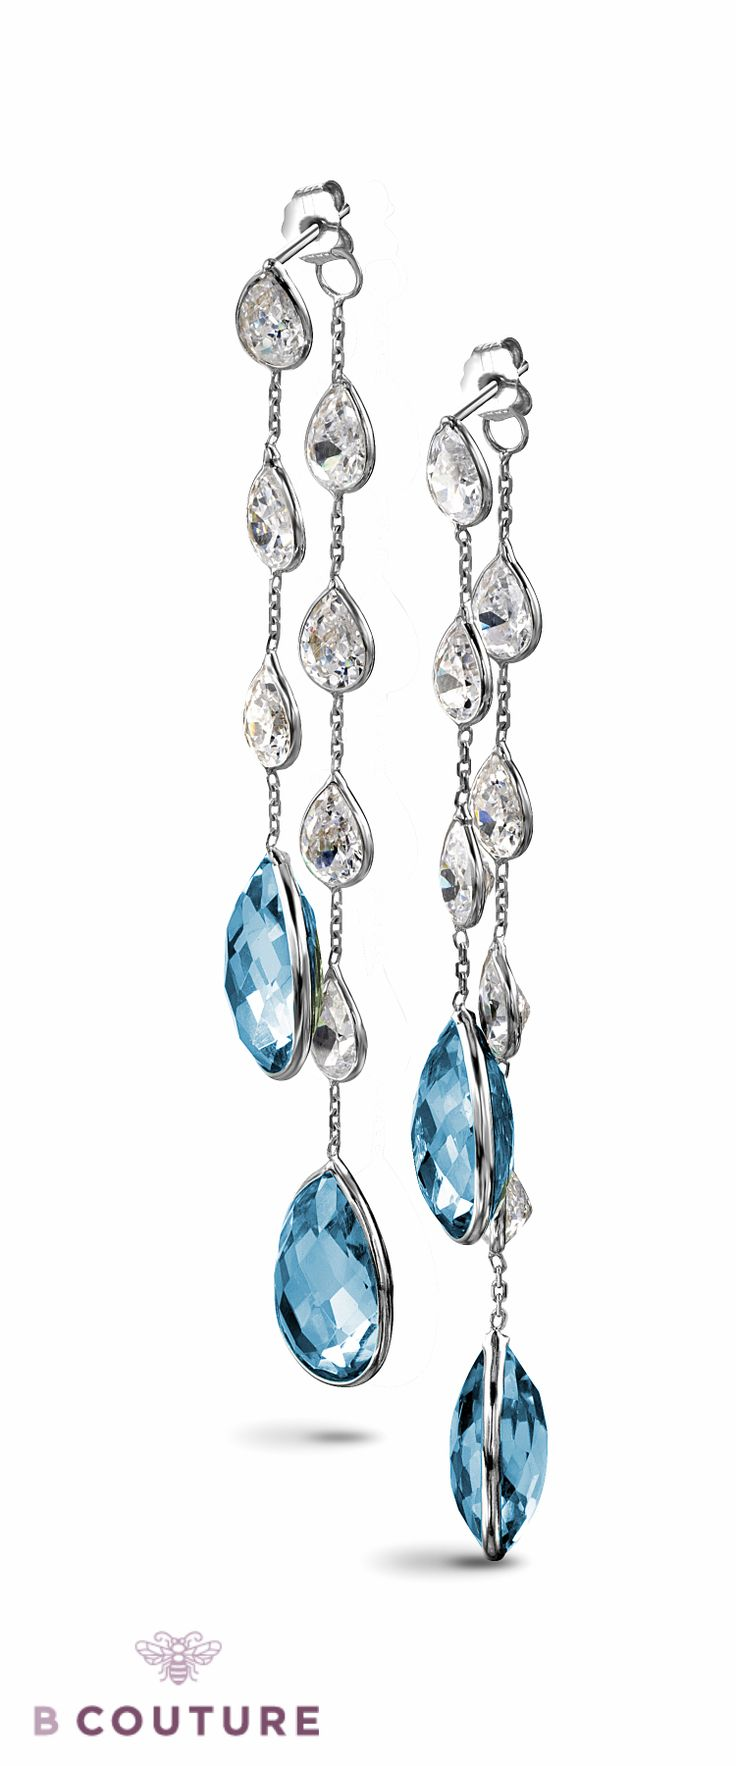 Blue Topaz earrings by Bcouture #jewellery #topaz #earring http://bcouture.ca/jewellery?utm_source=Pintrest&utm_medium=pin&utm_campaign=blue-topaz